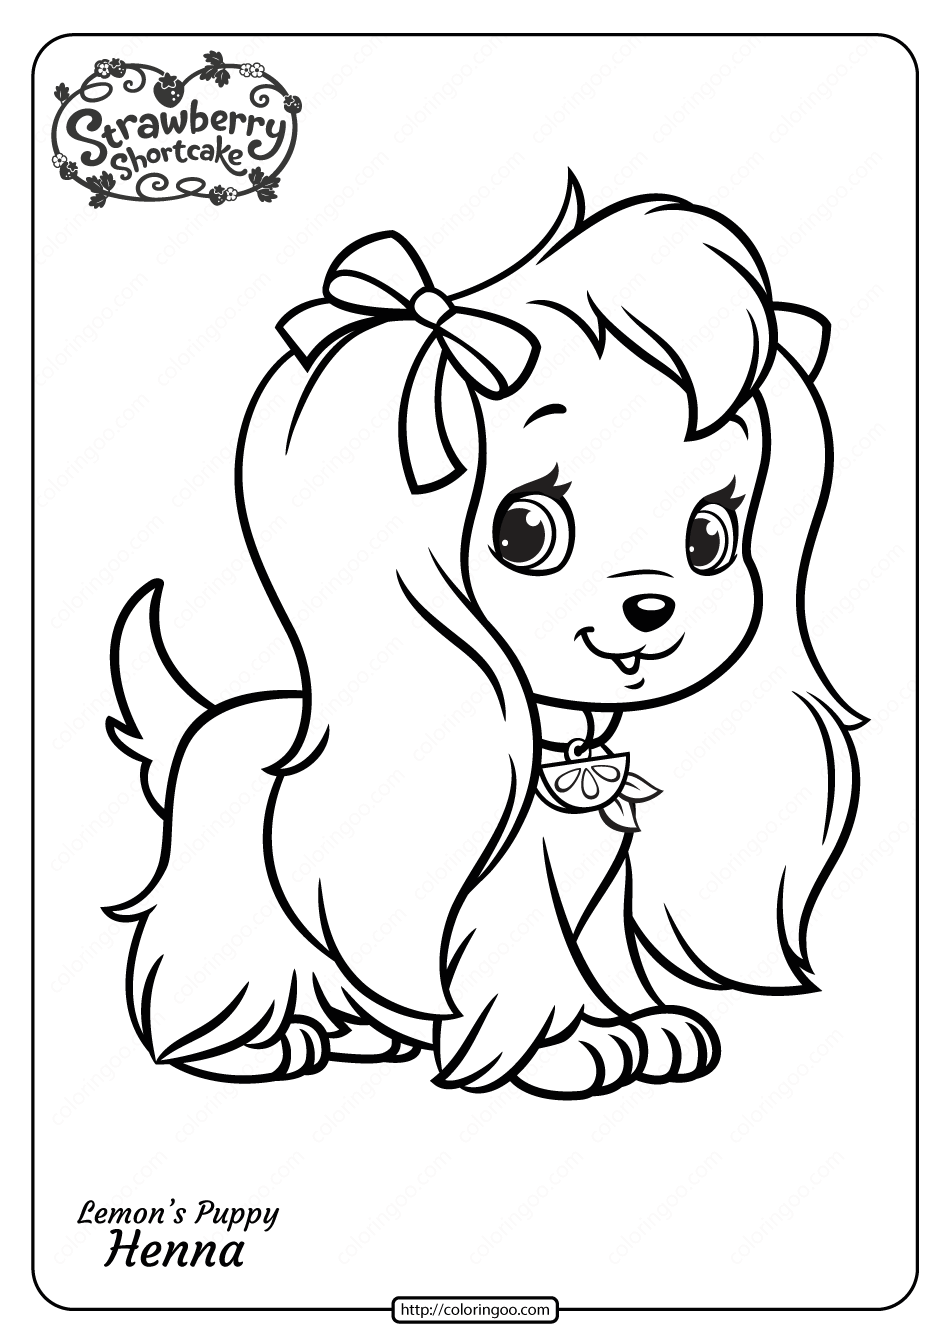 coloring pages printable free free printable lemon39s puppy henna pdf coloring page coloring printable free pages